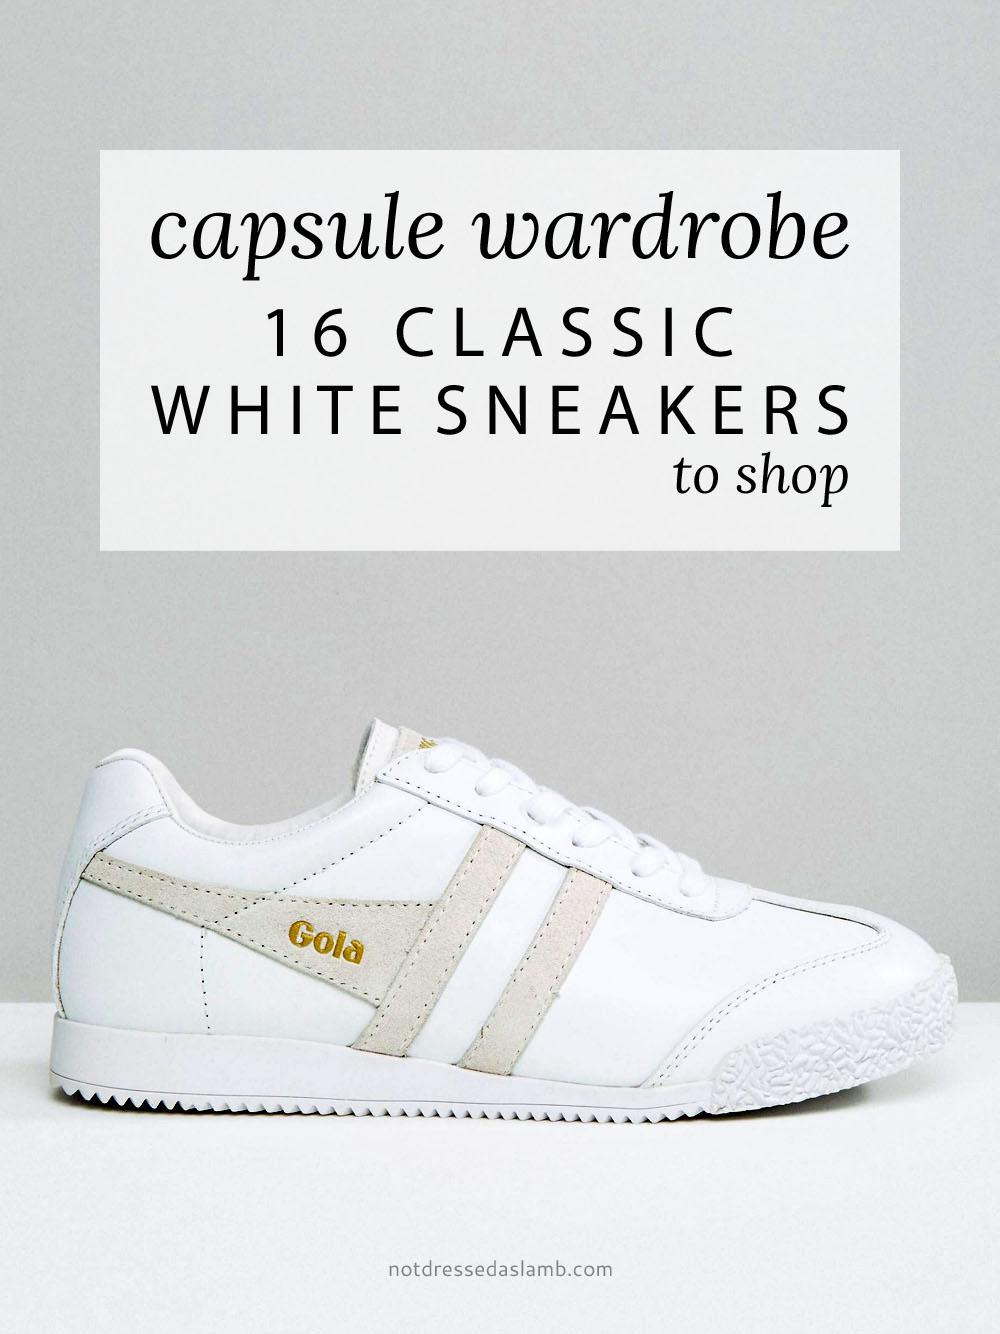 Capsule Wardrobe Pieces - 16 Classic White Sneakers to Shop (Gola Harrier Leather Mono Trainers)